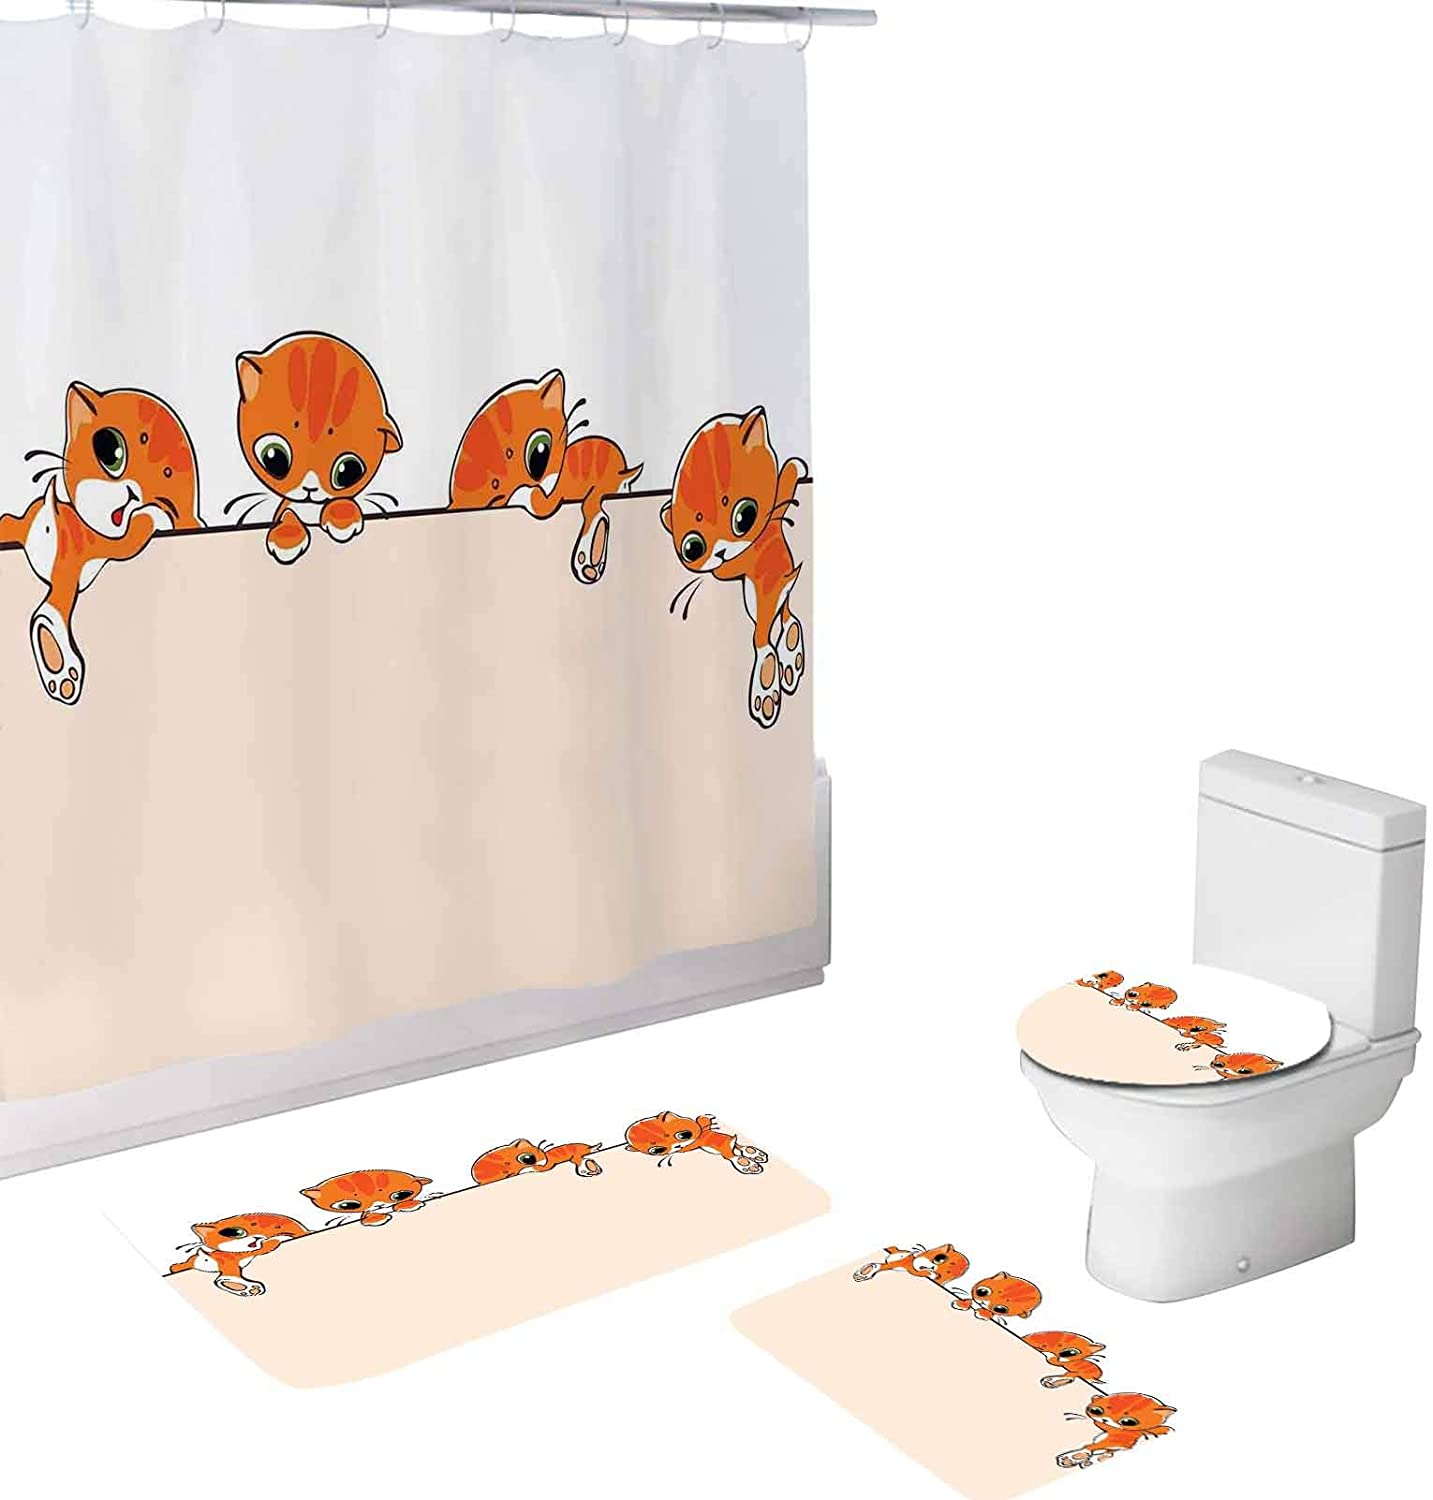 Cat 4 Piece Bathroom Set,Banner with Little Kitties Felines,72x72Shower Curtains with Toilet Pad Cover Bath Mat Shower Curtain Set Orange Cream White